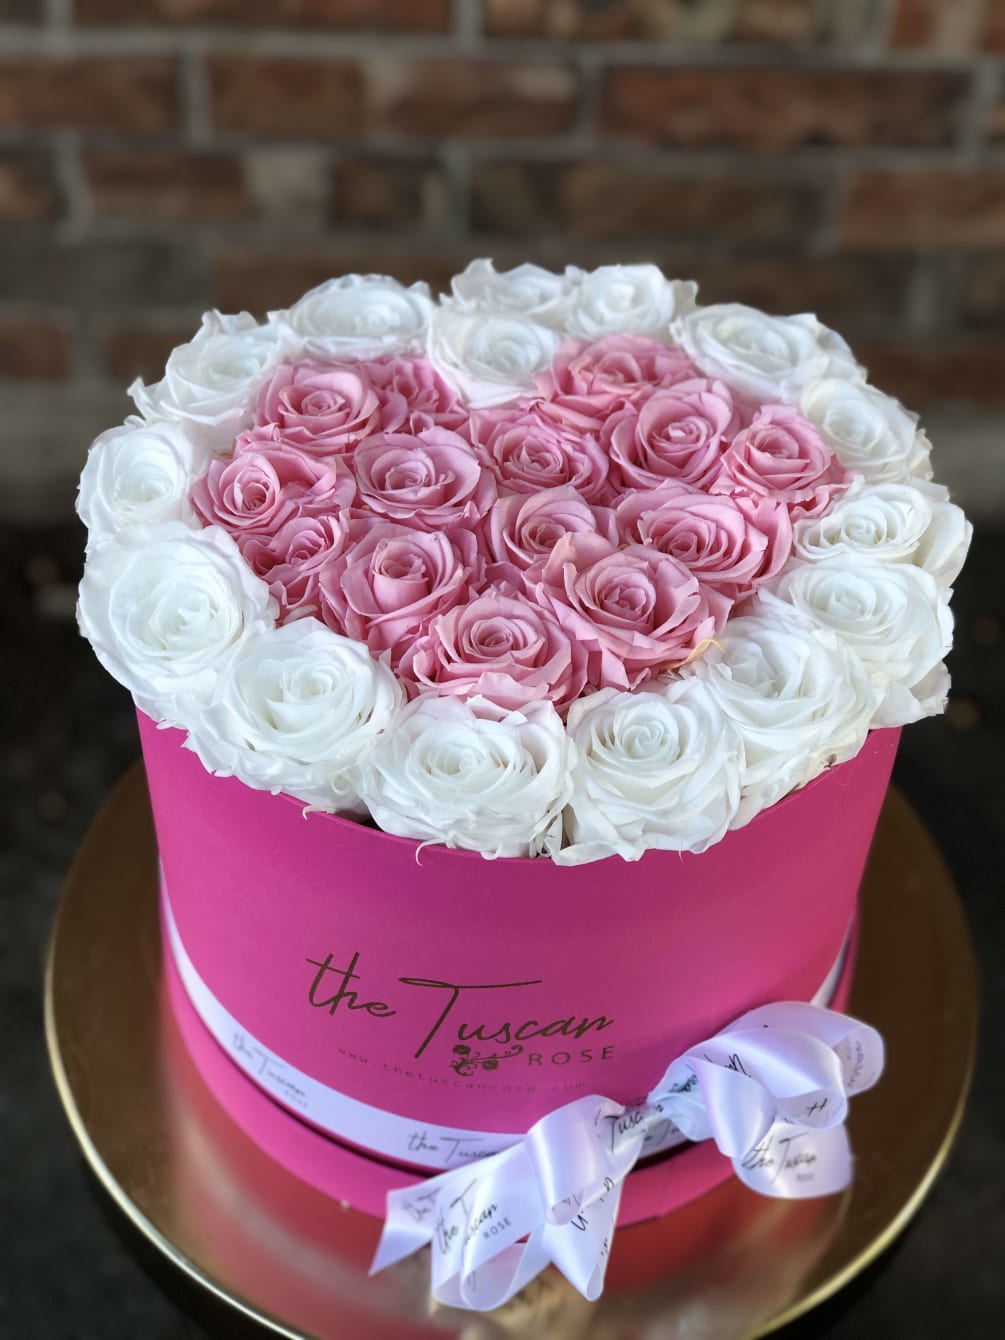 Luxury Forever Flower Bouquet Box White With Pink Rose Center By The Tuscan Rose Florist